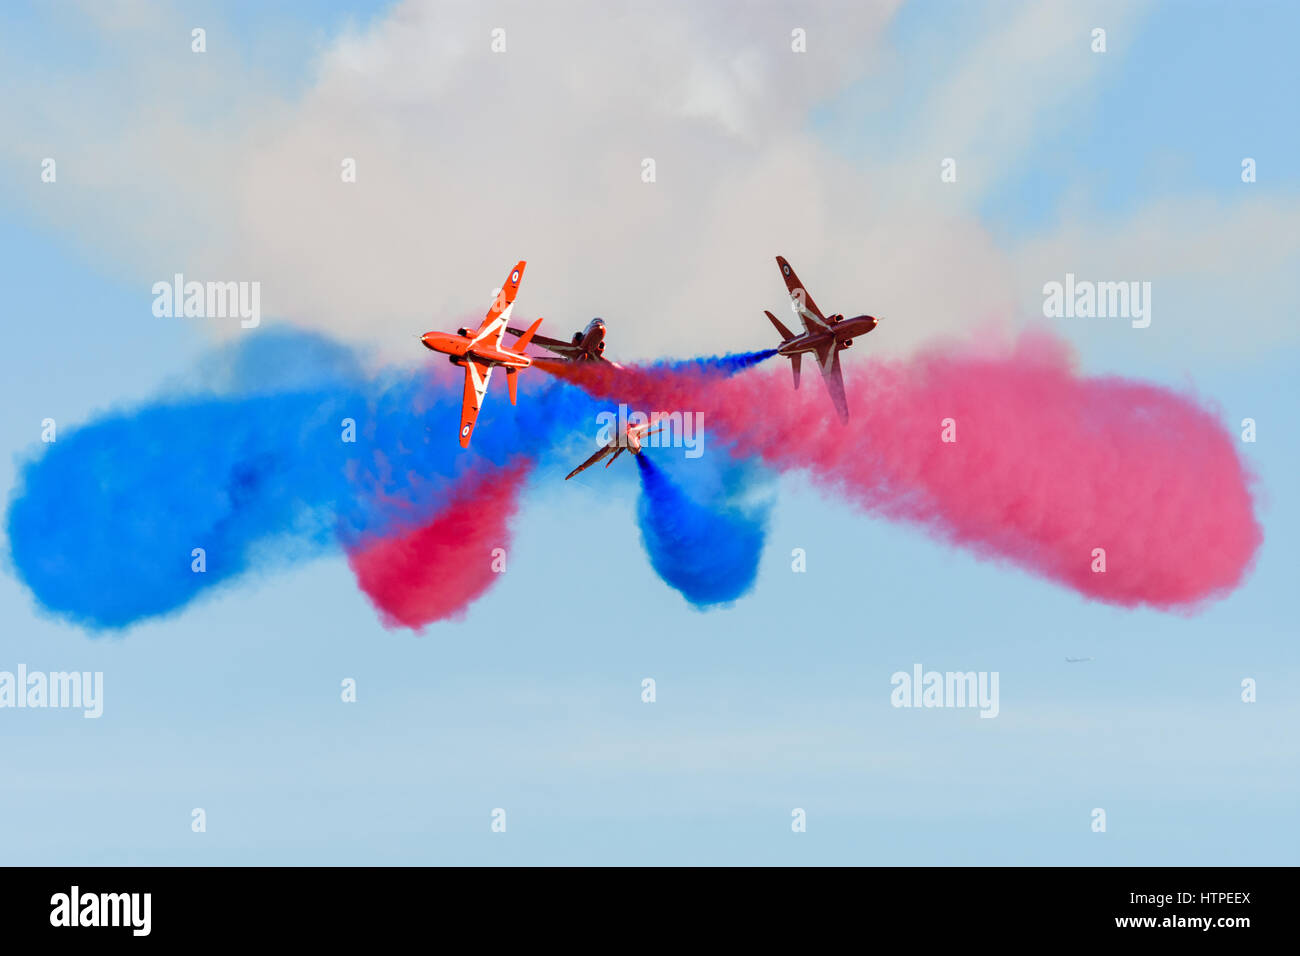 Dramatic Red Arrows formation break during an airshow displayStock Photo